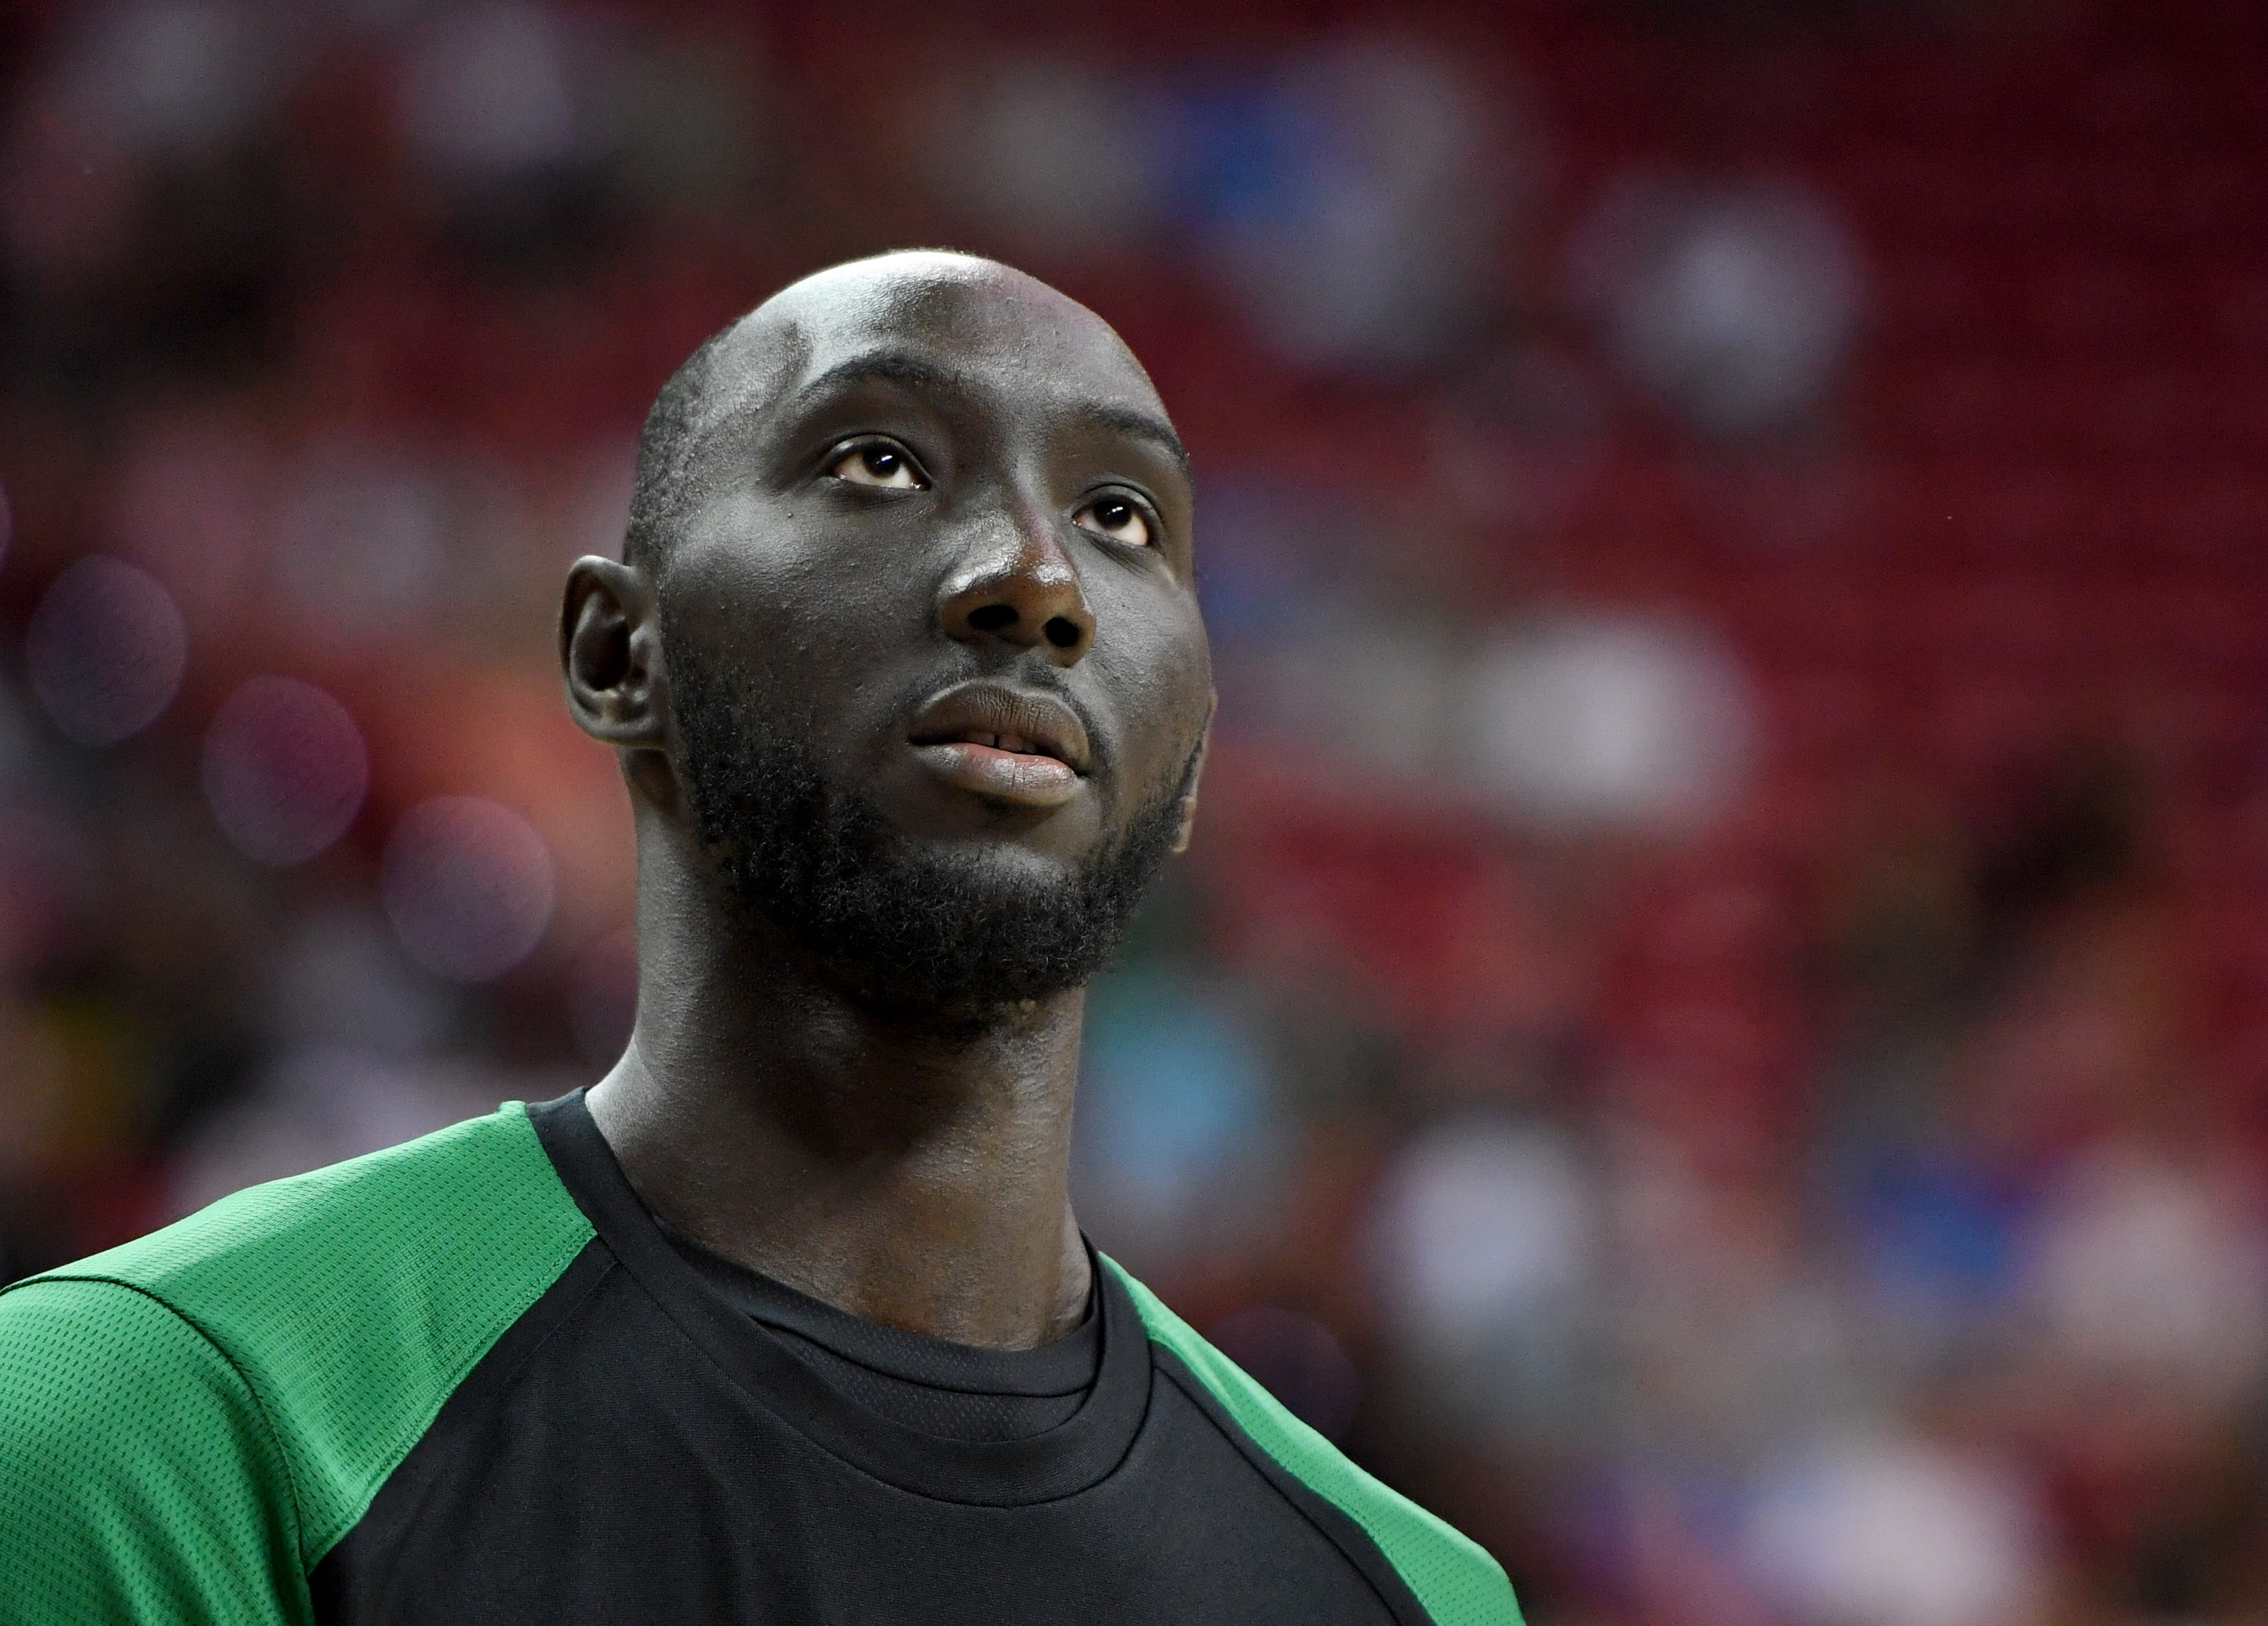 Tacko Fall, the NBA's tallest player, loves Dragon Ball Z